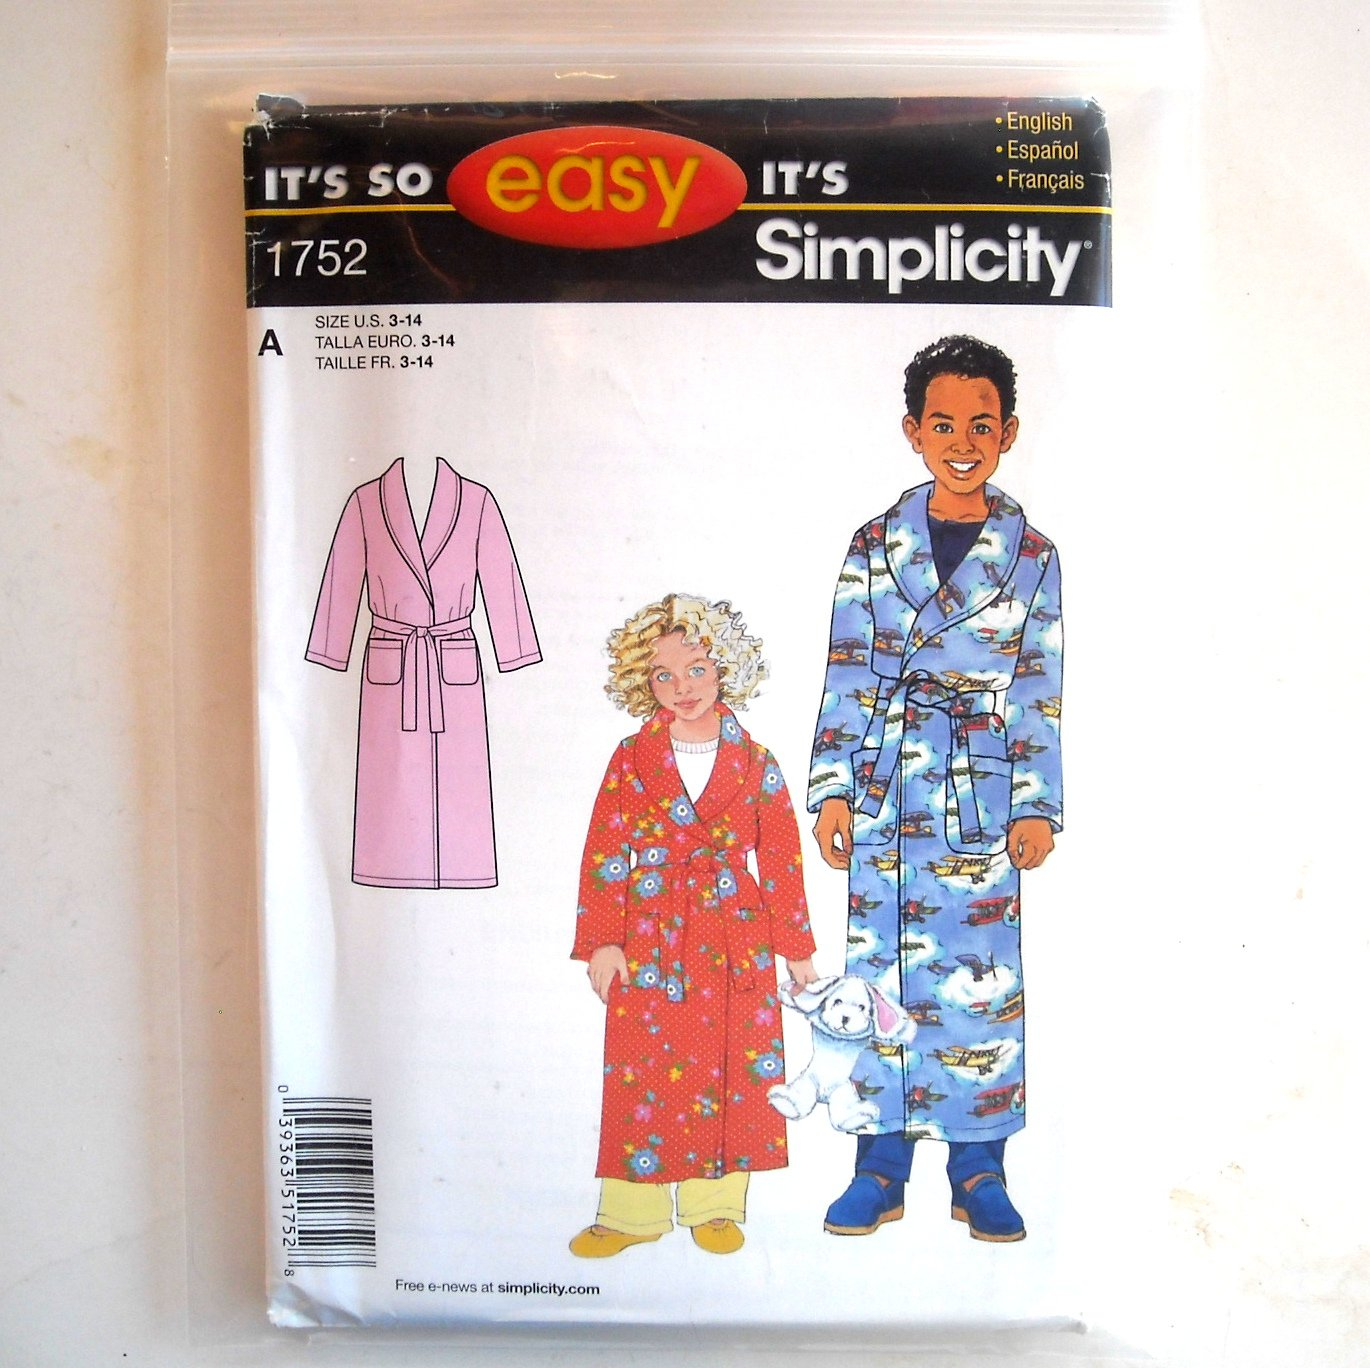 crafts for boys childs boys robe size 3 14 easy simplicity sewing 1752